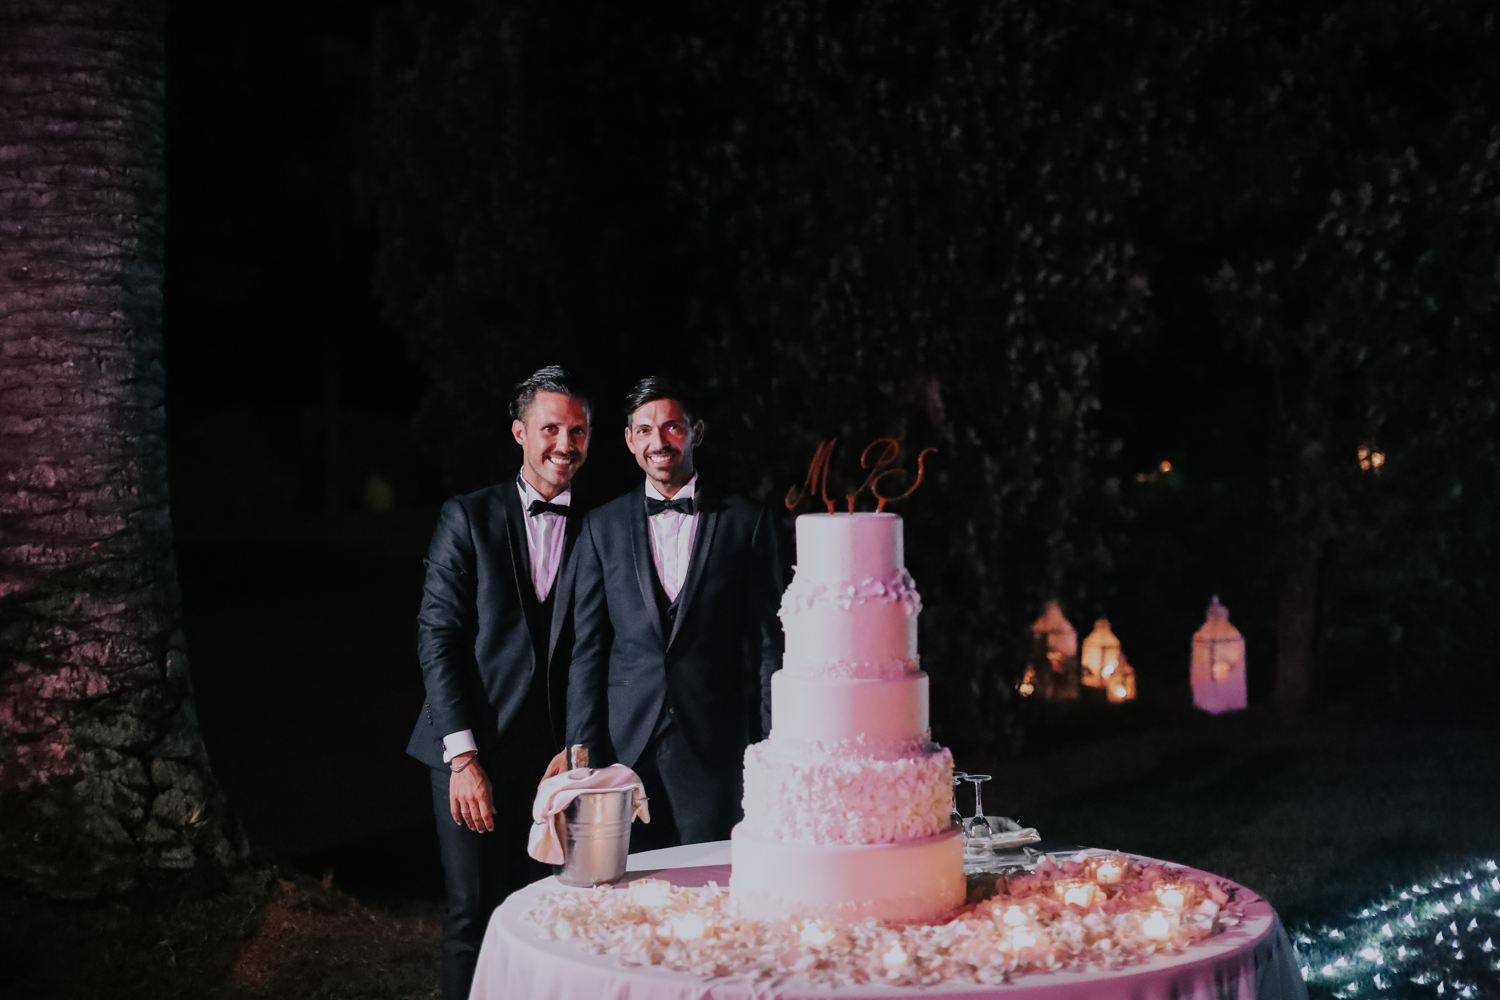 http://www.weddingamalfi.com/wp-content/uploads/Alessandro-and-Diego-wedding-cake-and-candles.jpg